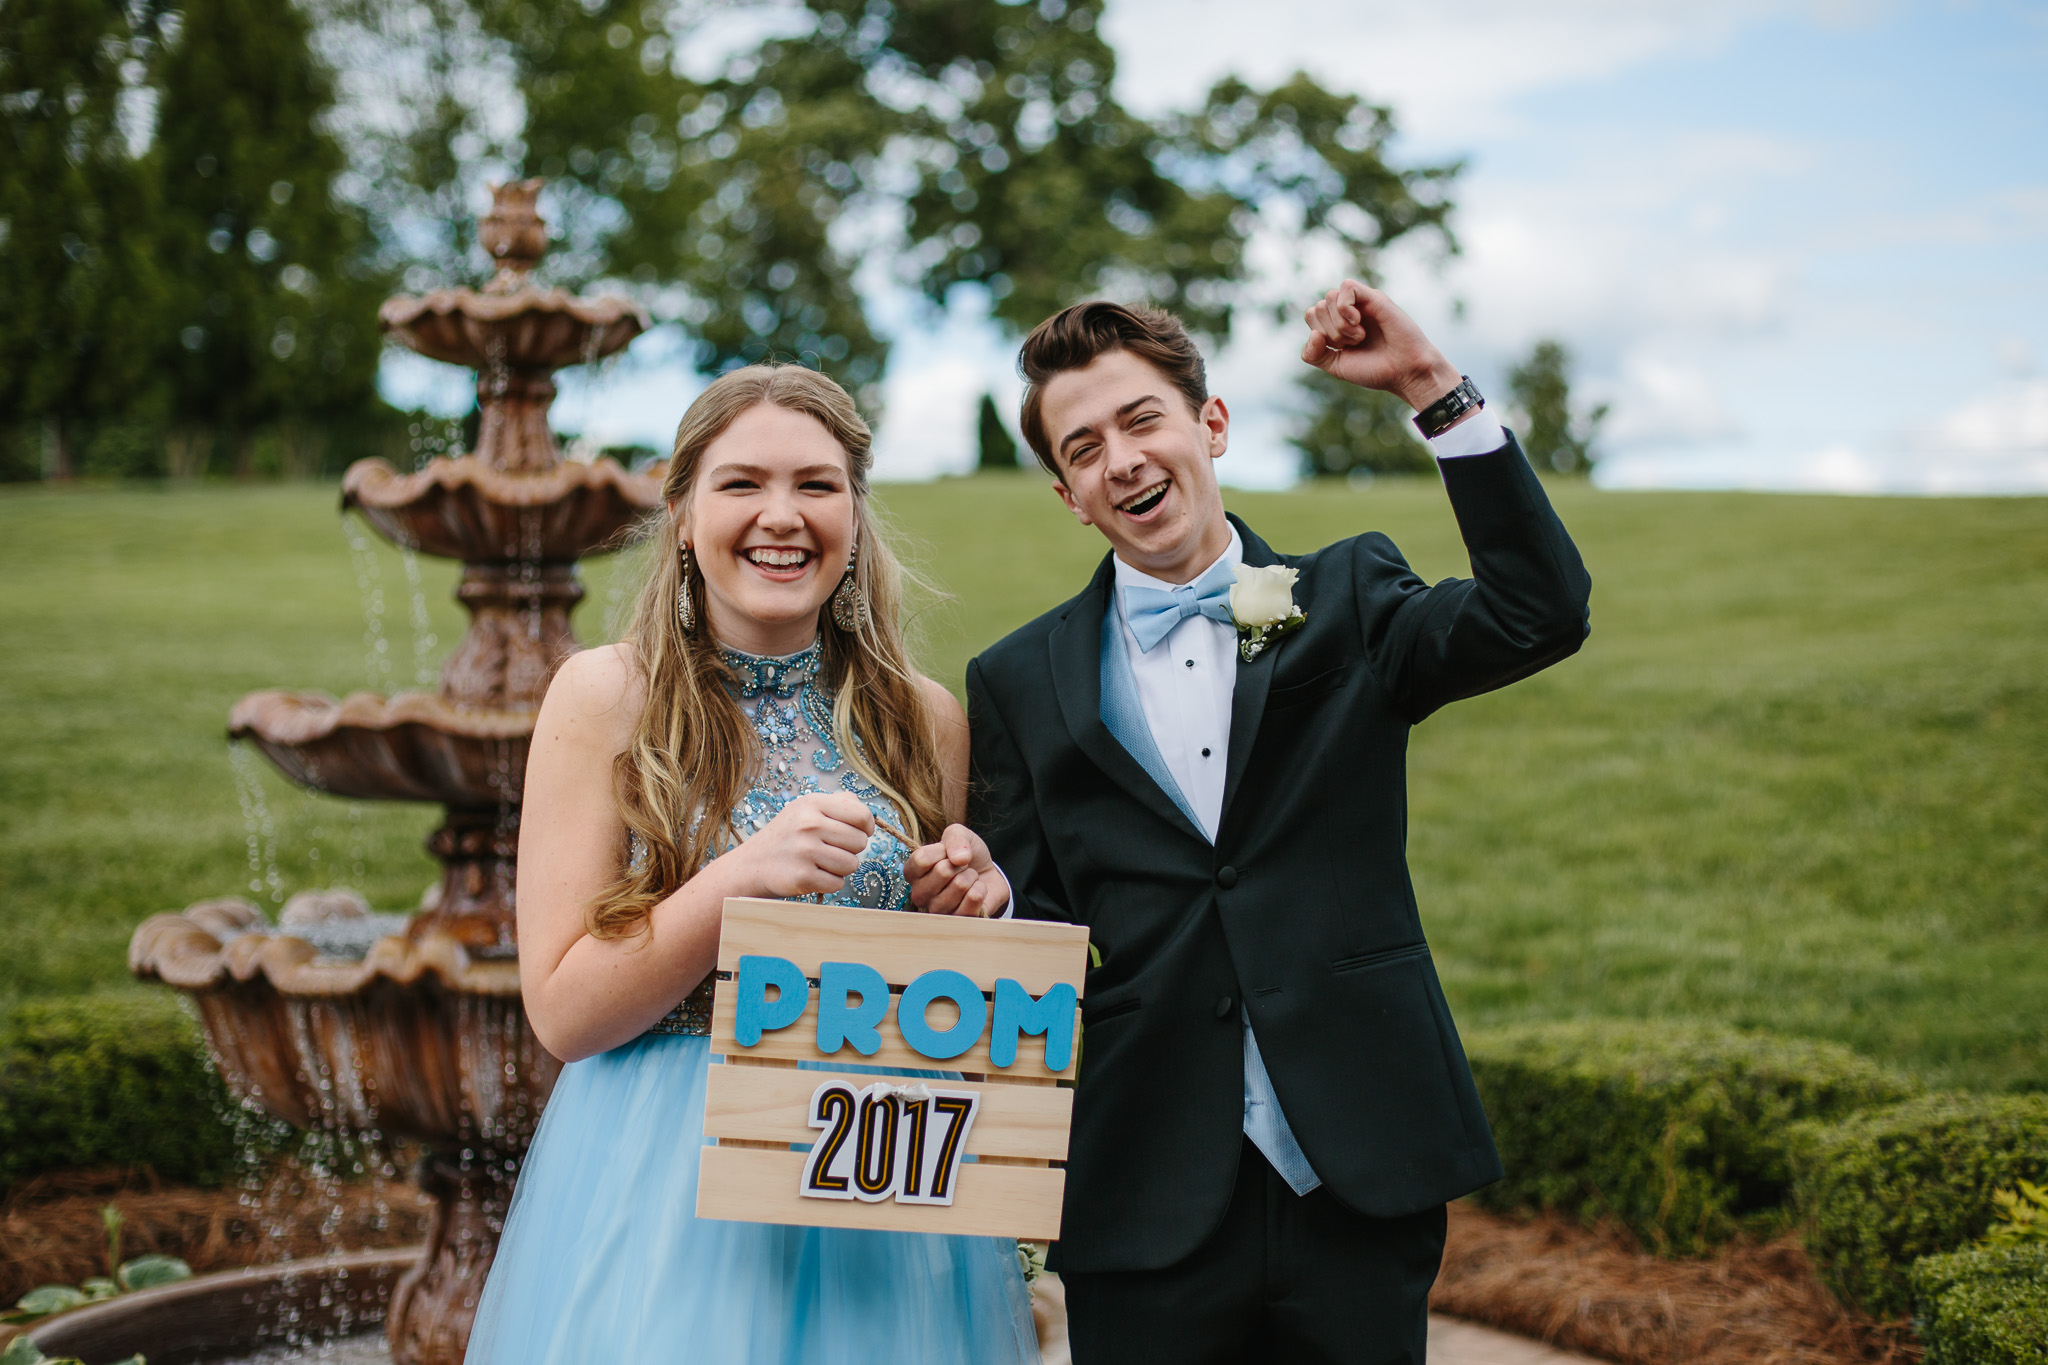 jennichandlerphotography_2017Prom_WEB-81.jpg